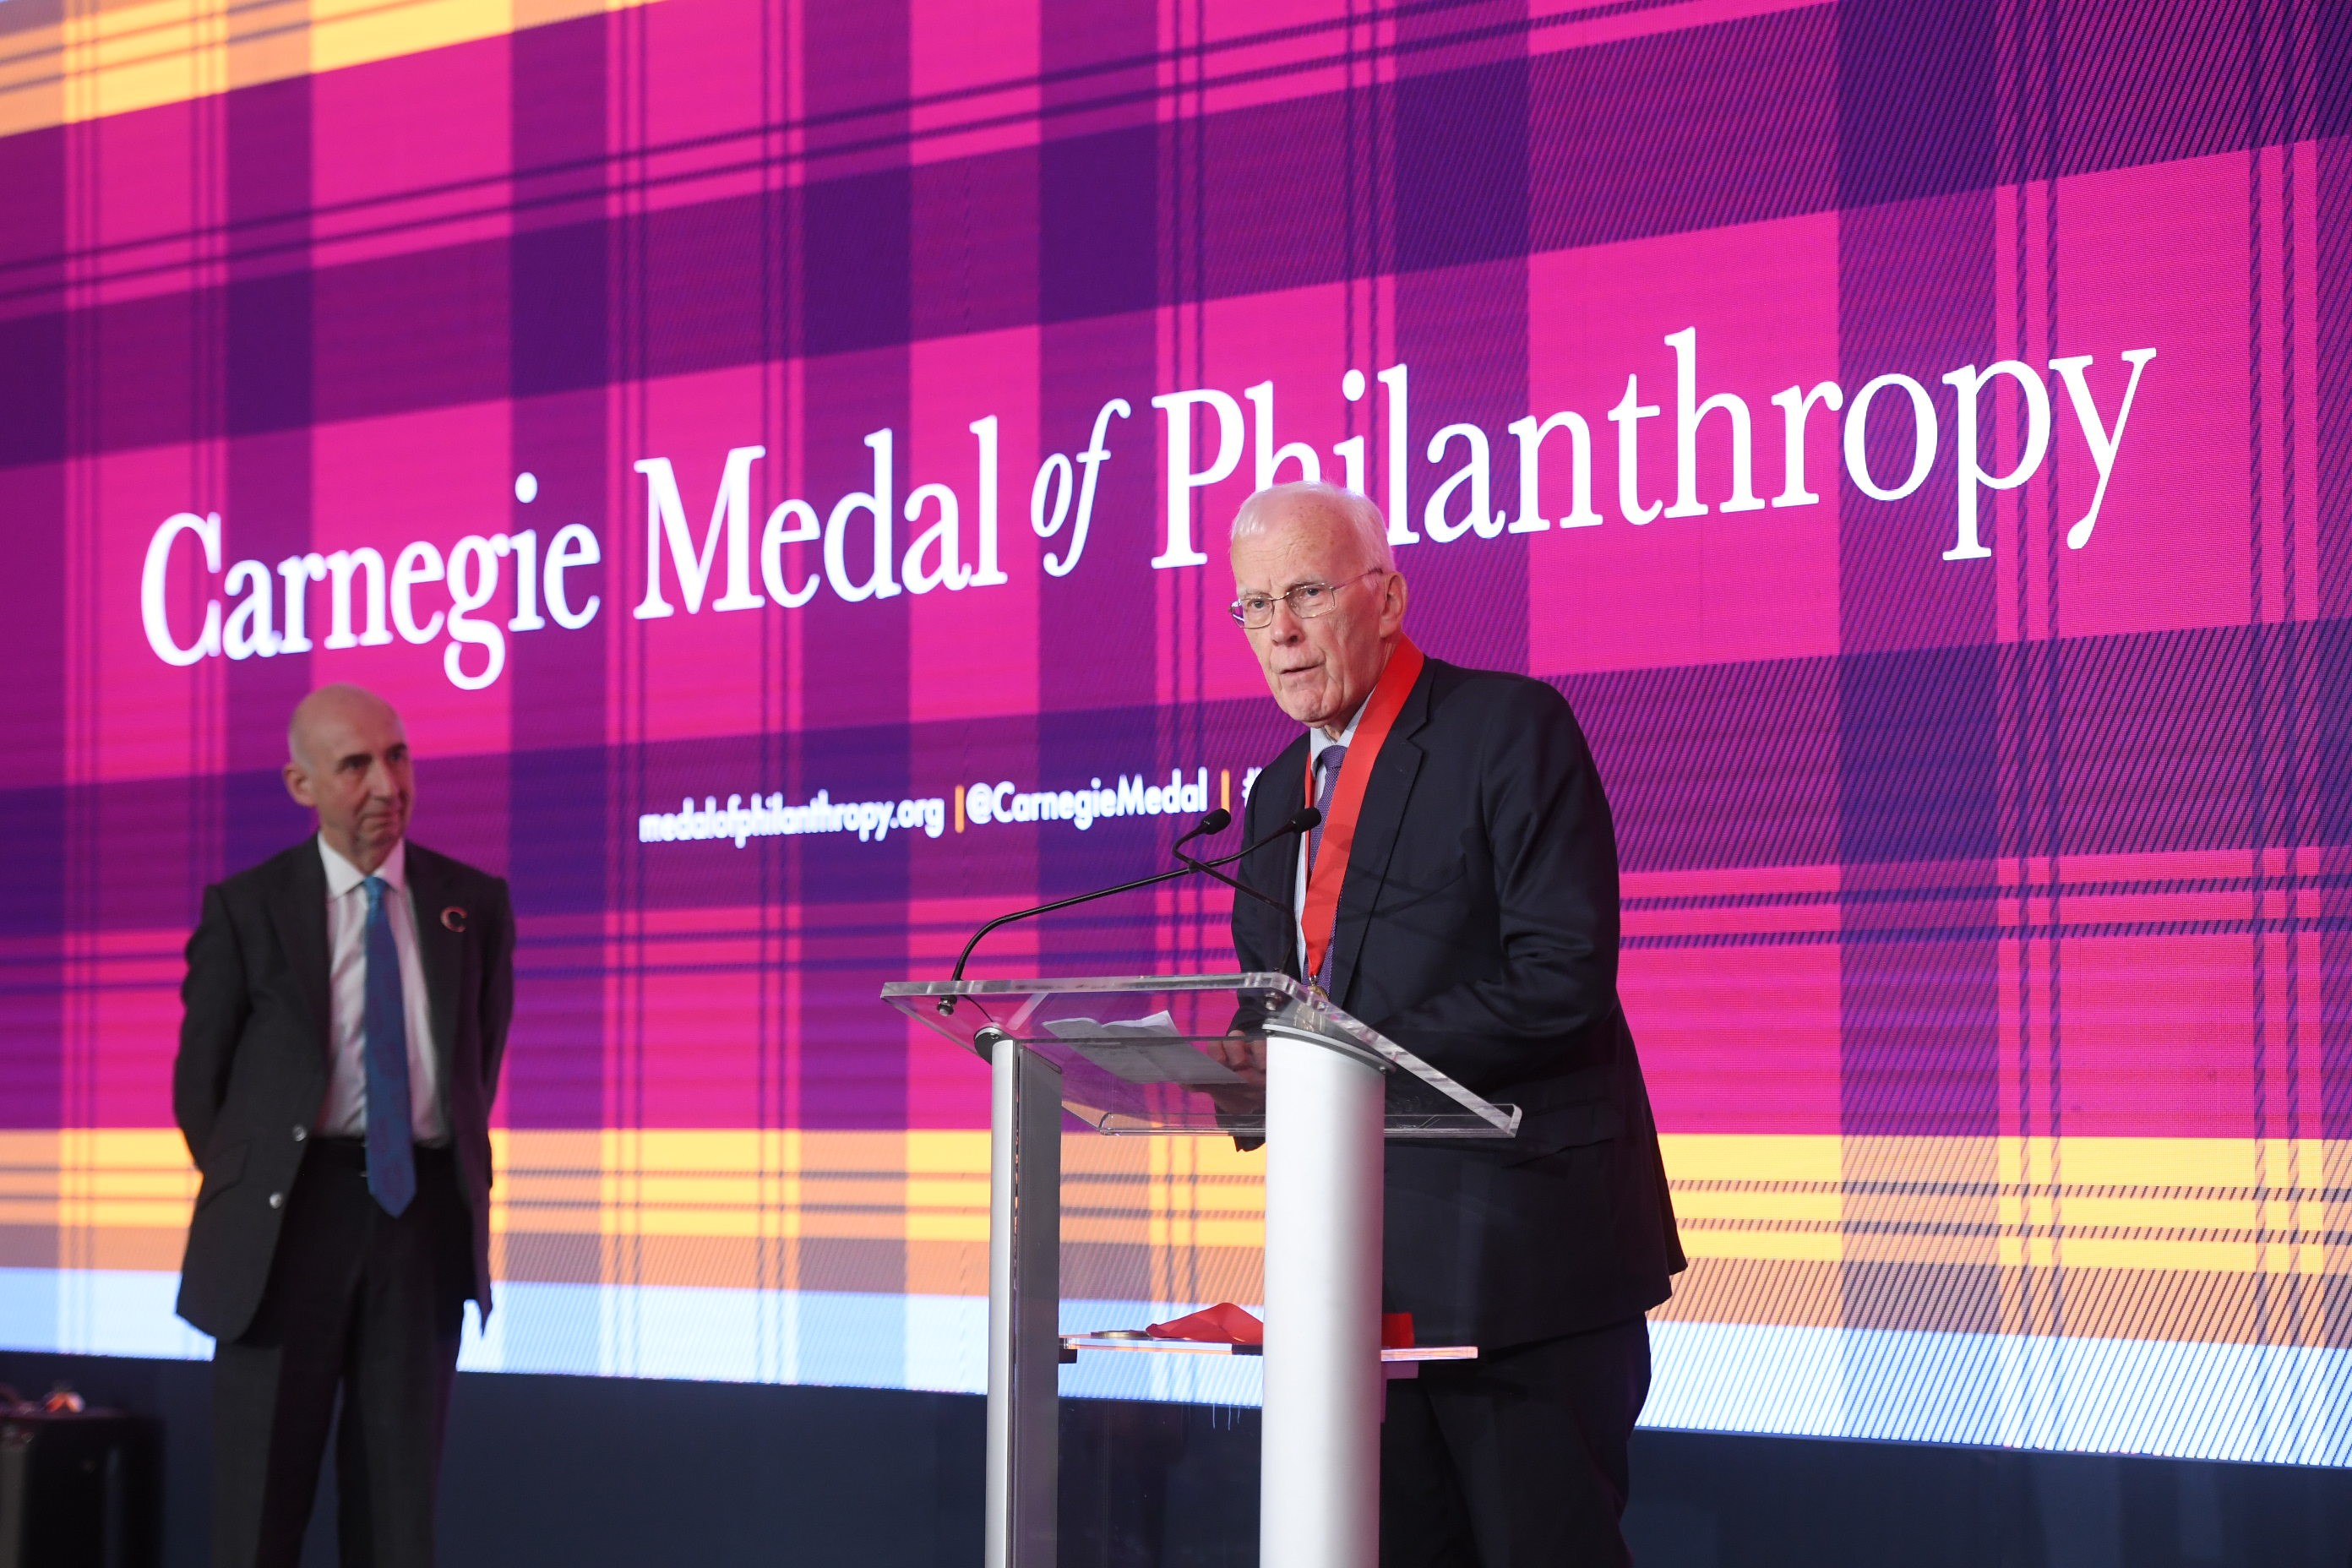 Sir Ian addresses the audience at the ceremony in New York.